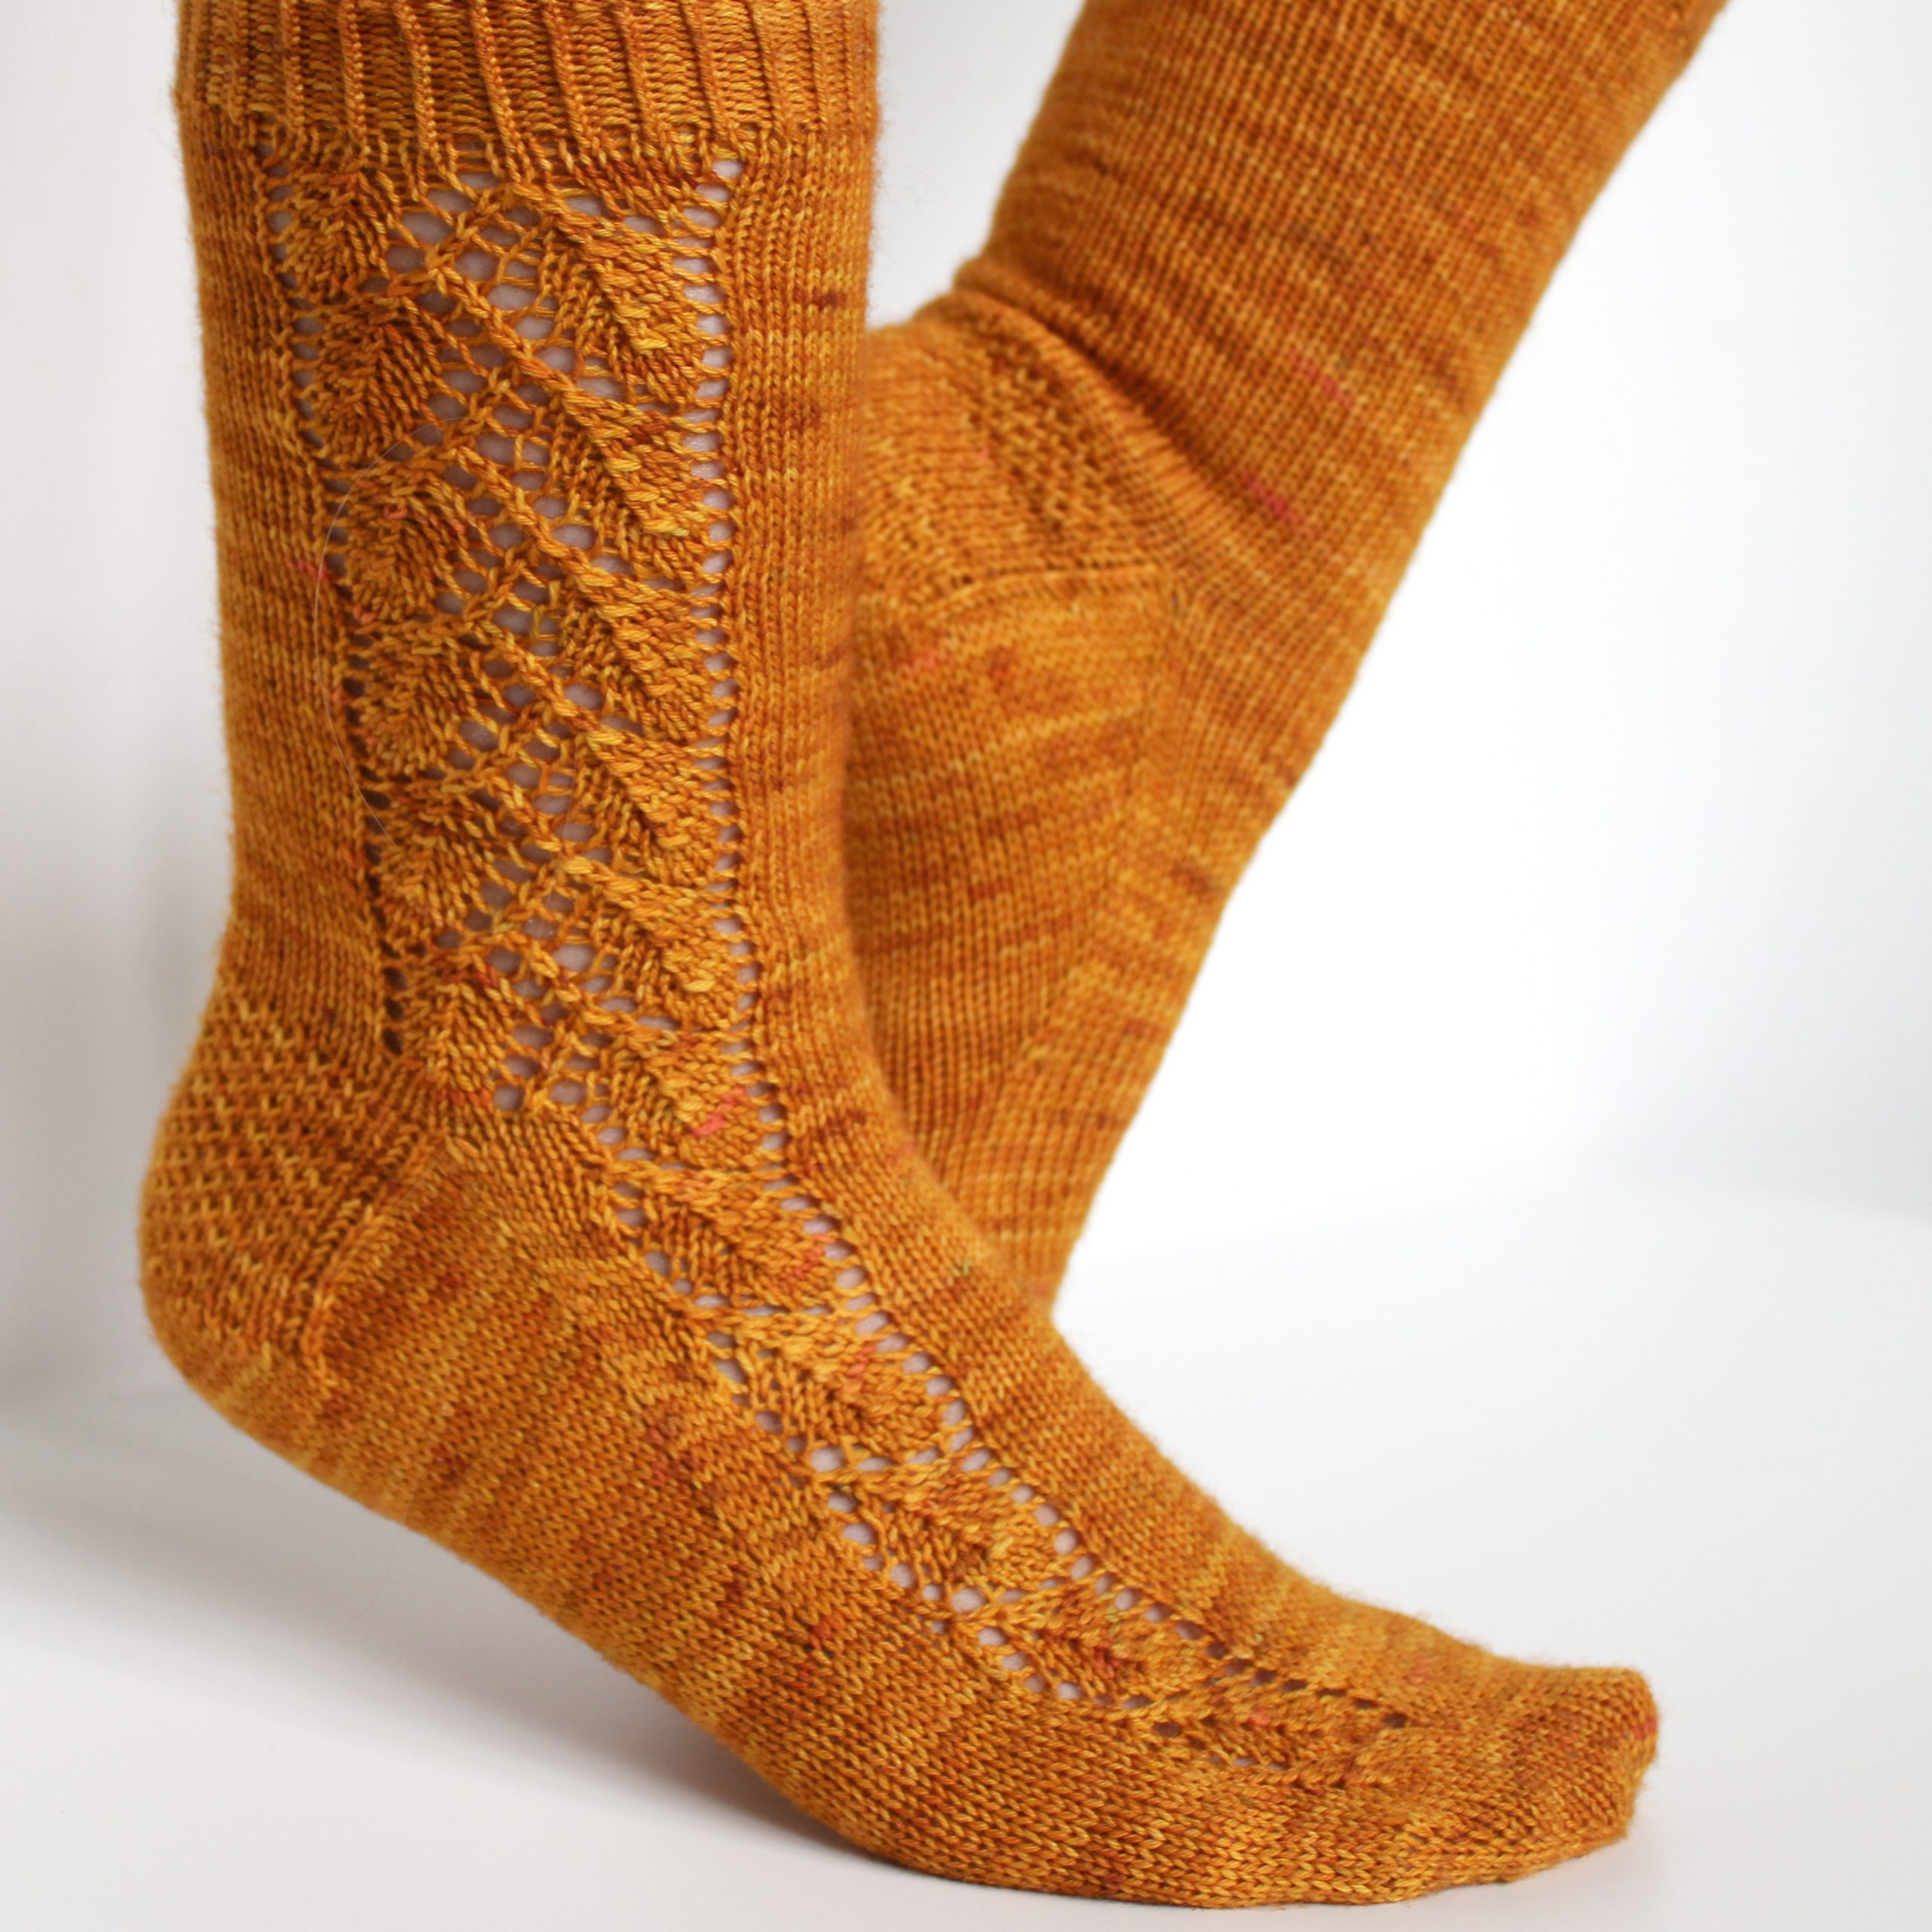 Orange socks with a lace leaf pattern up the foot and leg